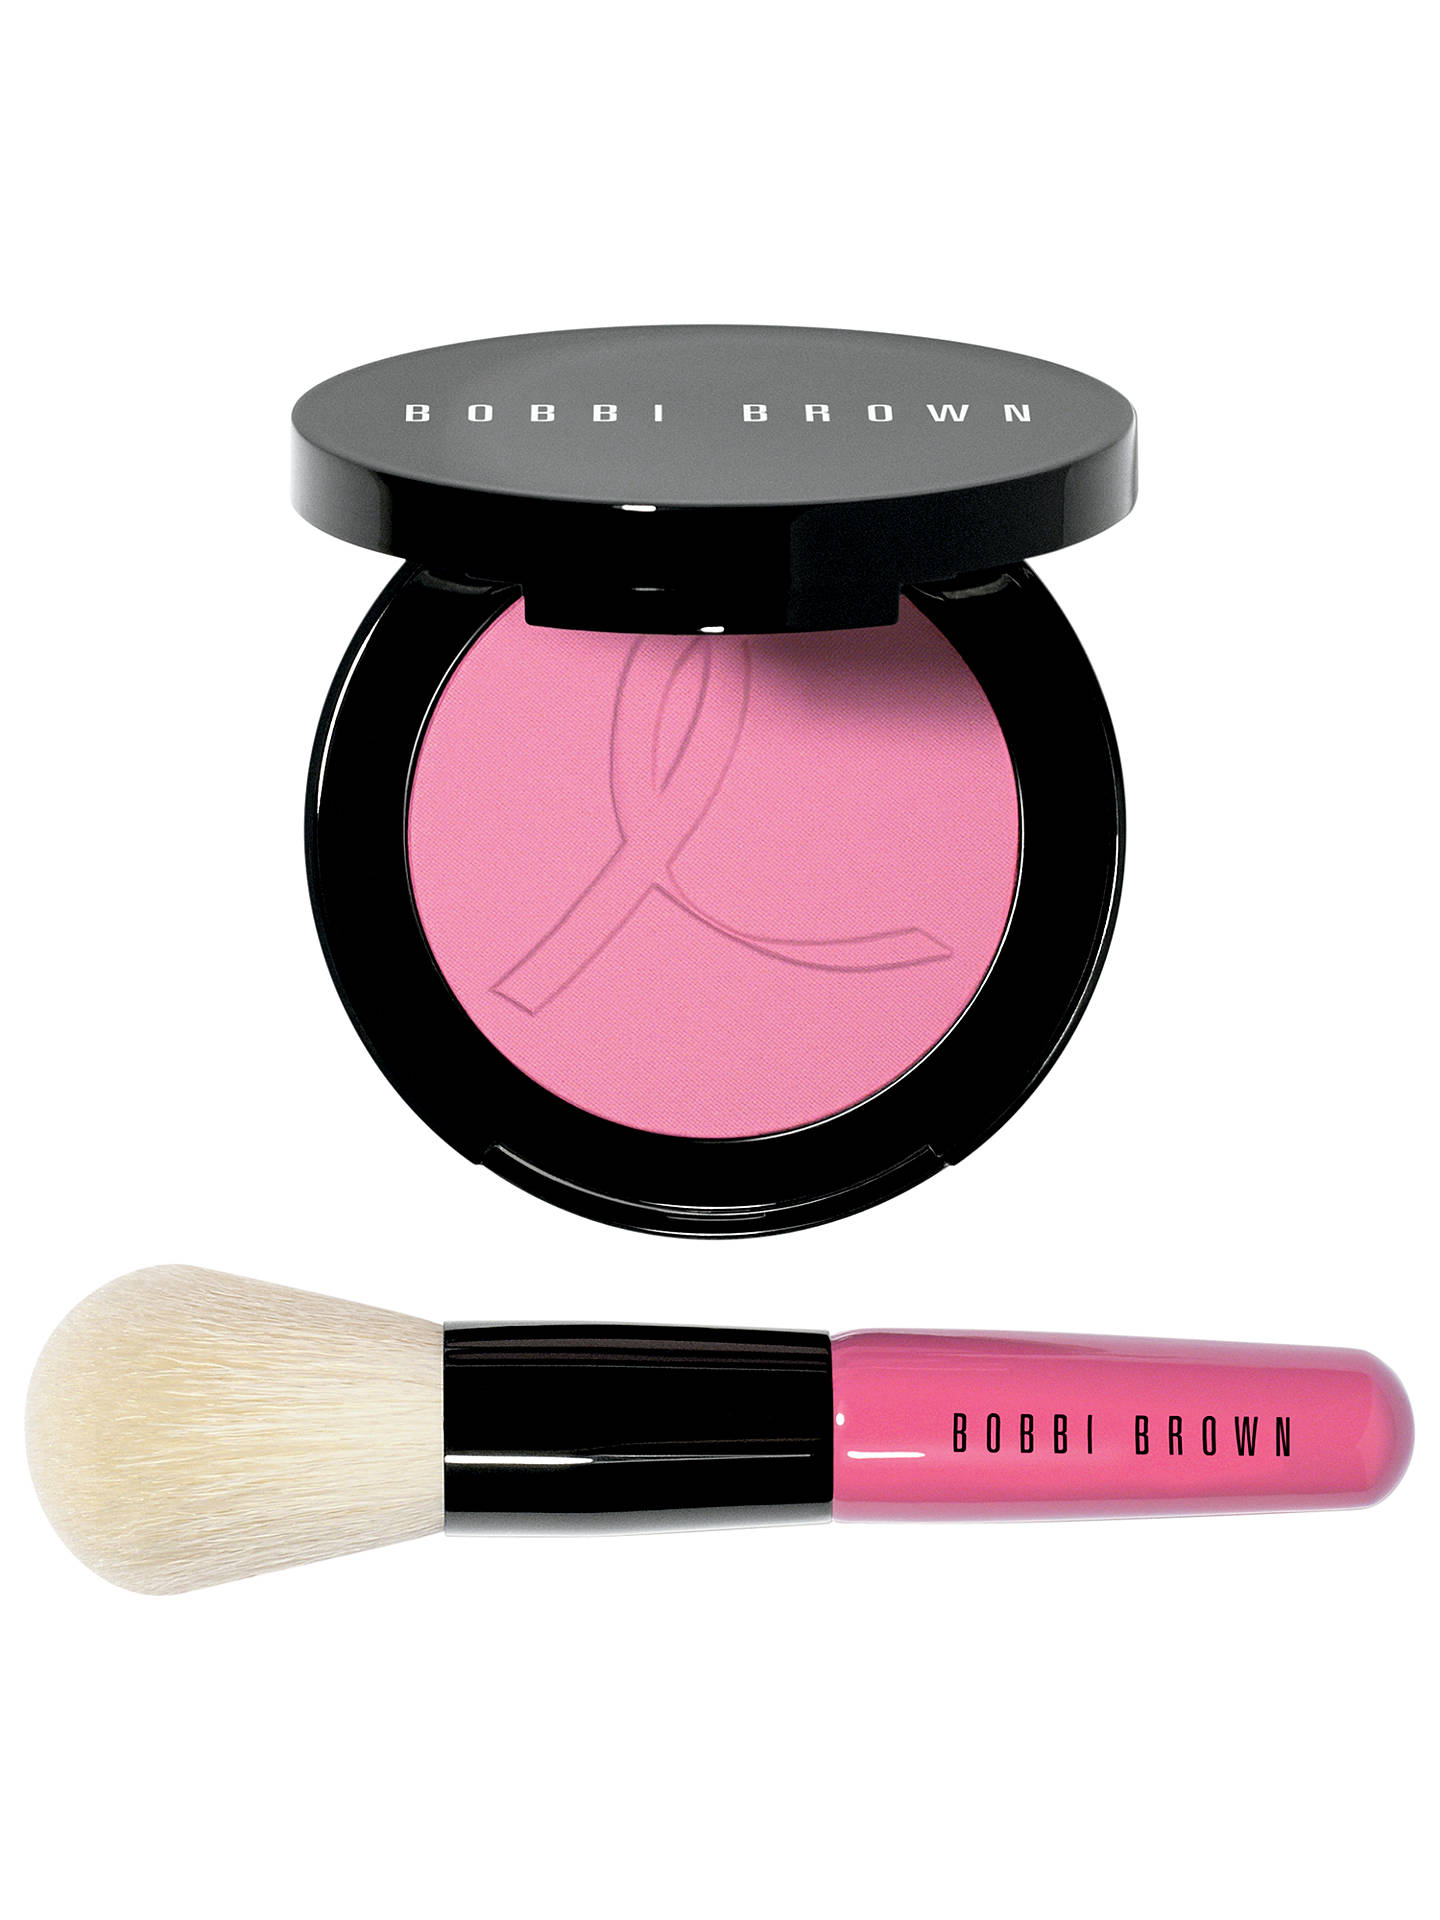 Buy Bobbi Brown Breast Cancer Awareness Peony Makeup Set Online at johnlewis.com